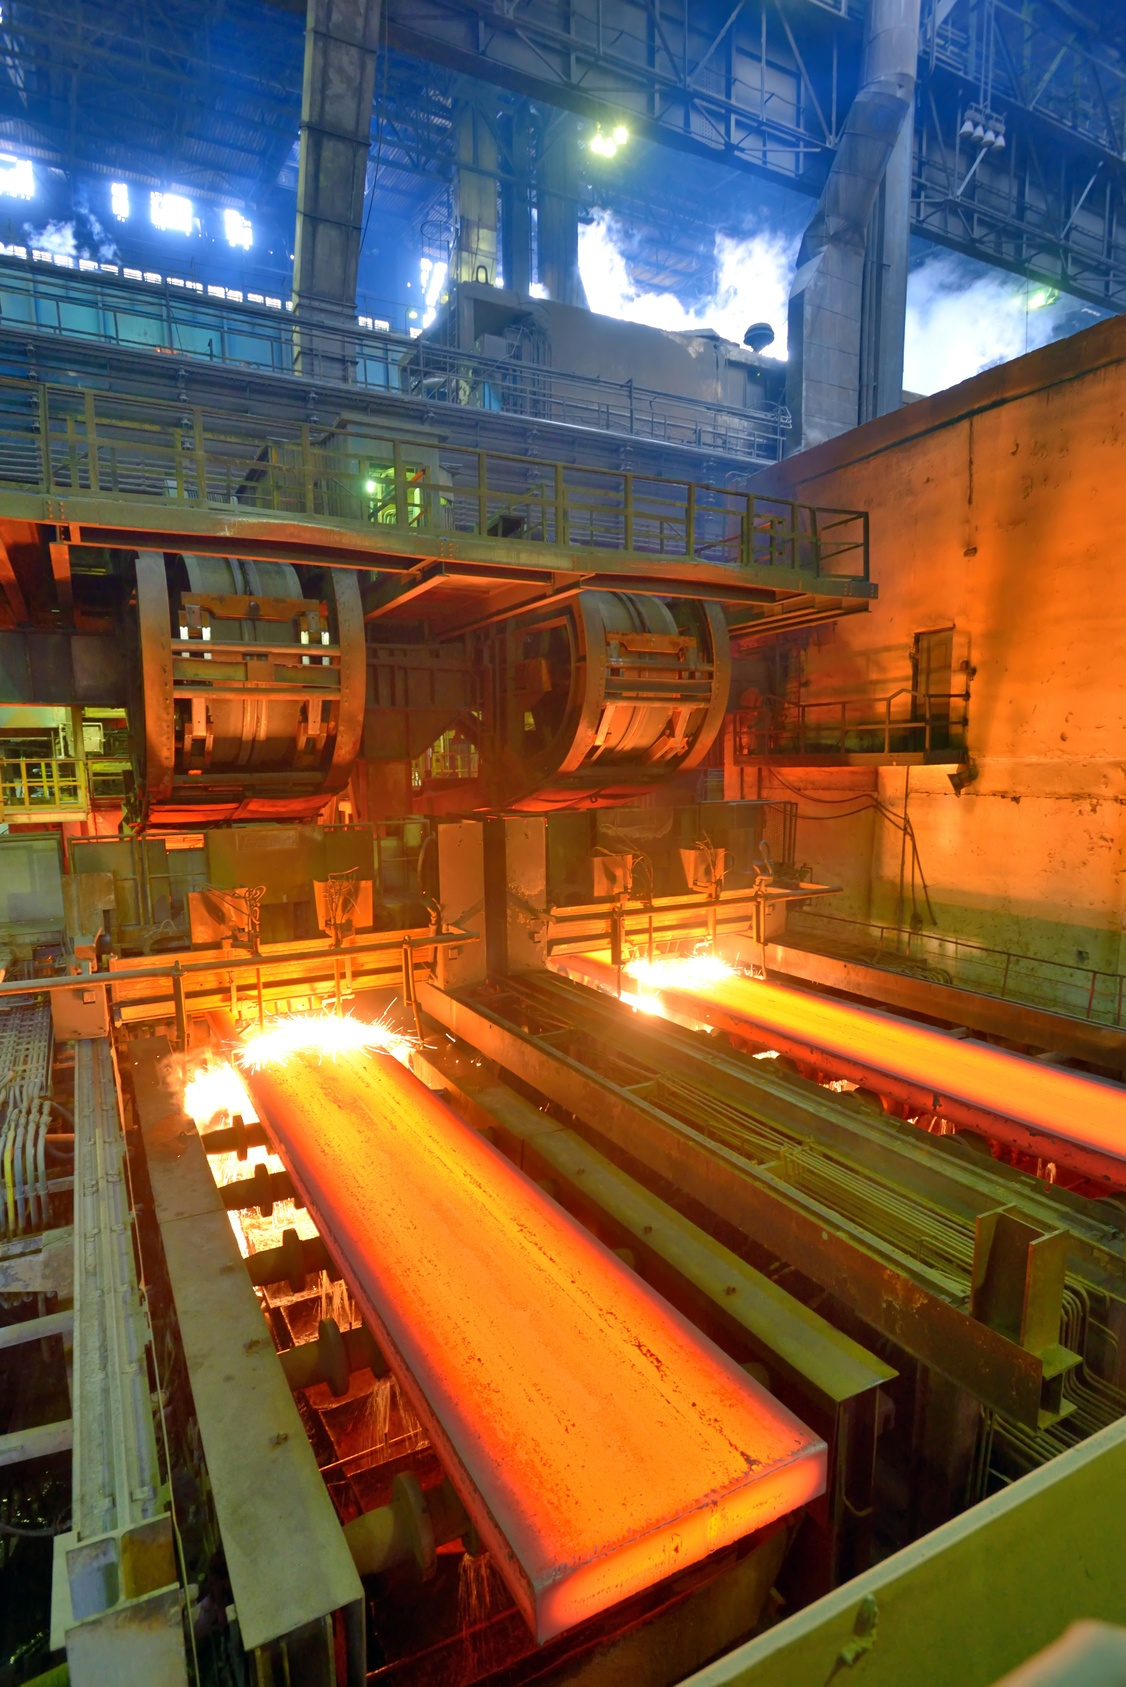 When steel is red-hot, it usually means that the tensile strength of the steel has been compromised.